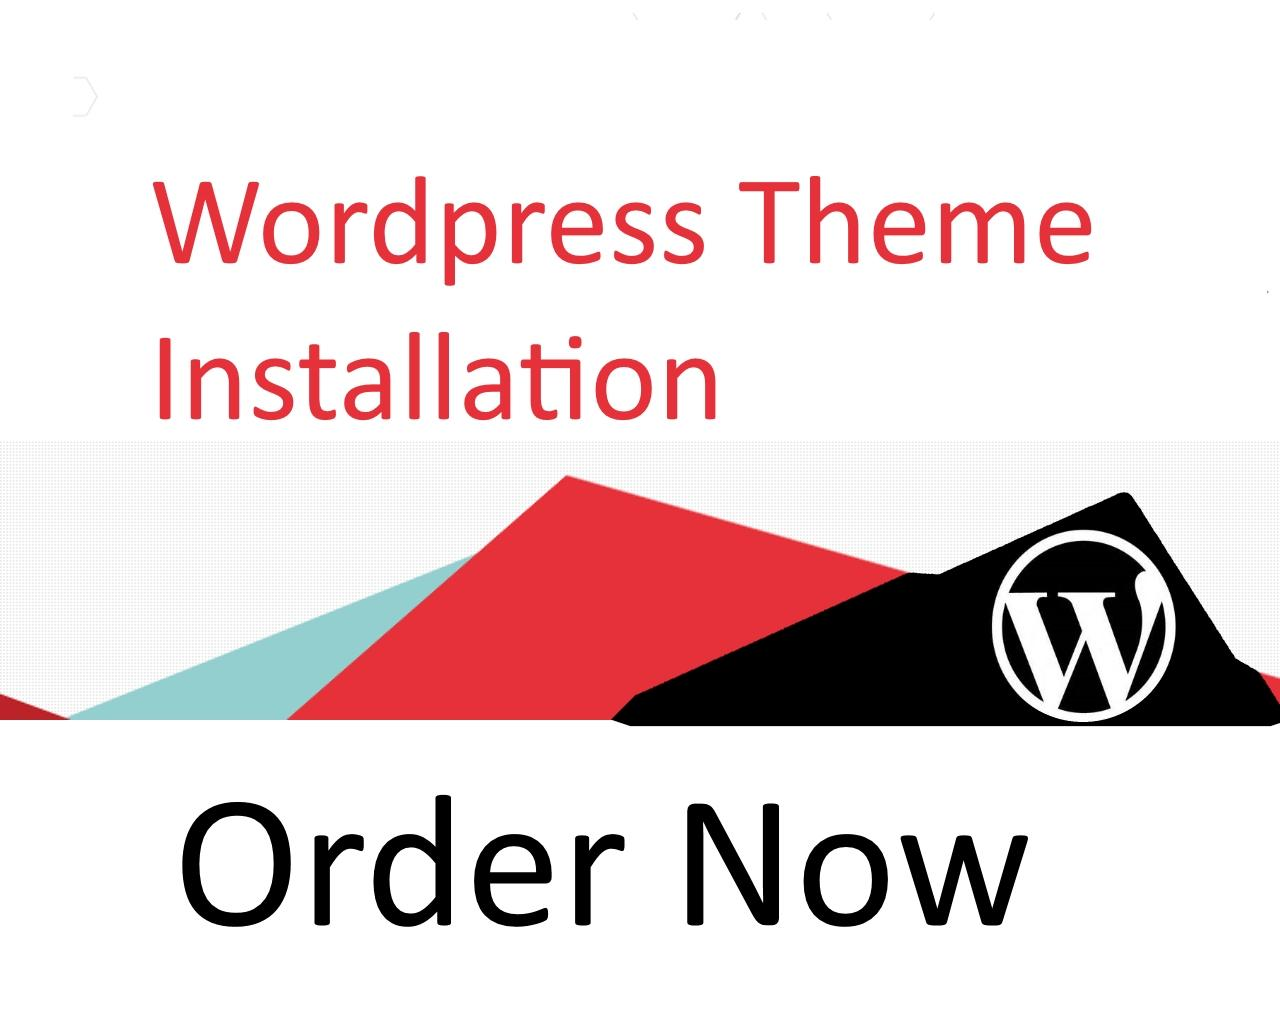 Express Wordpress Installation by dasinfomedia - 79895